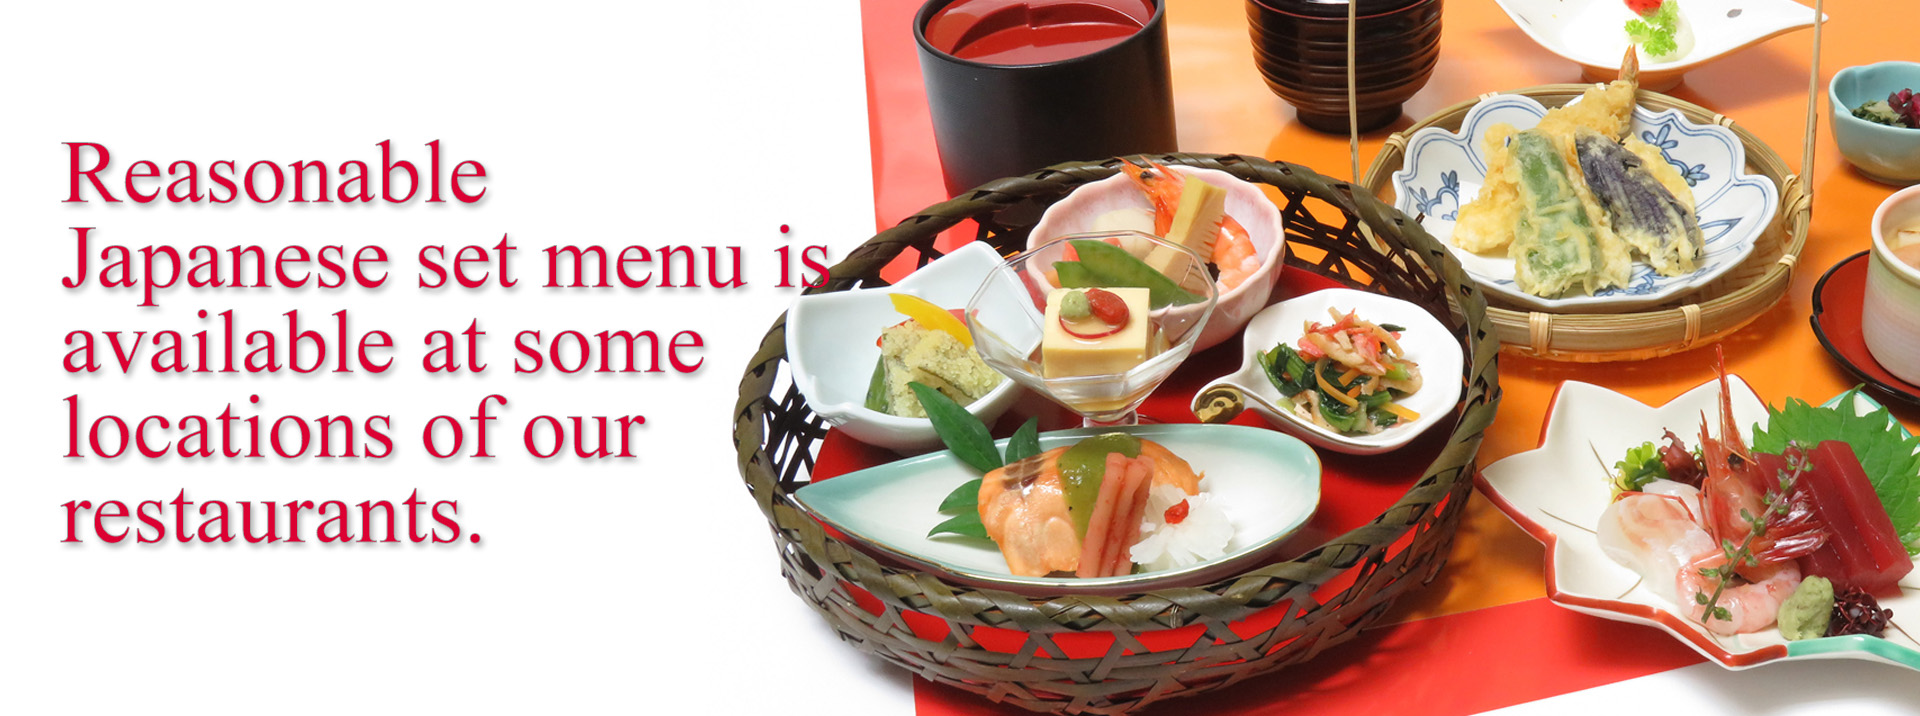 Reasonable Japanese set menu is available at some locations of our restaurants.